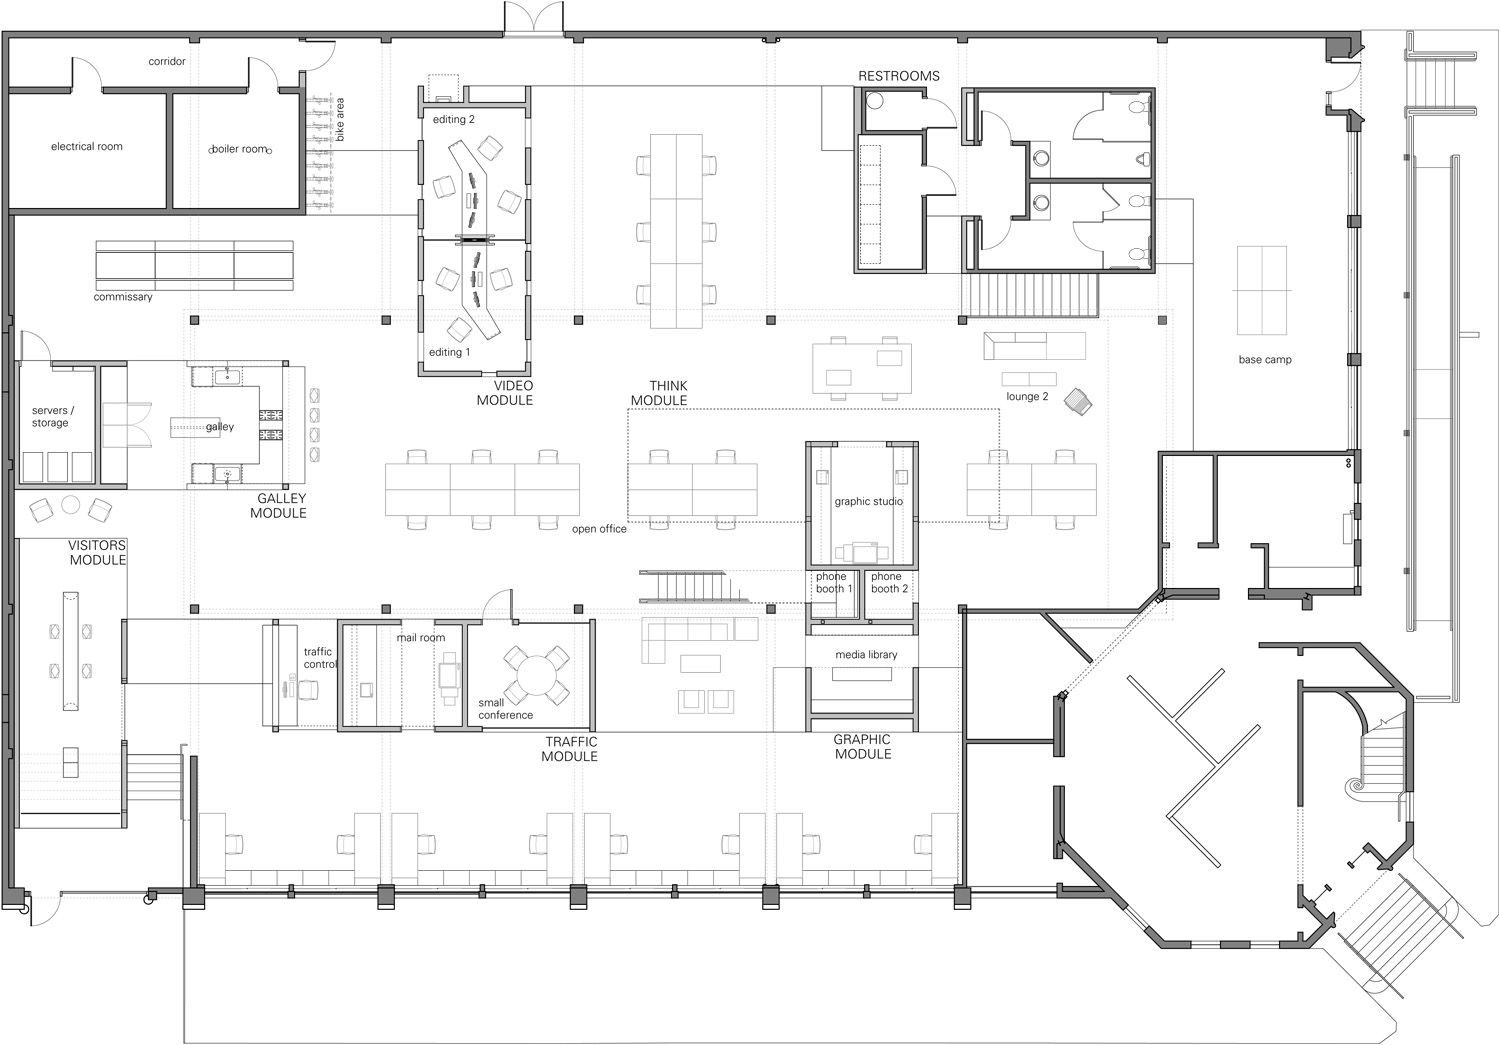 North skylab architecture office floor plan office for Draw office floor plan